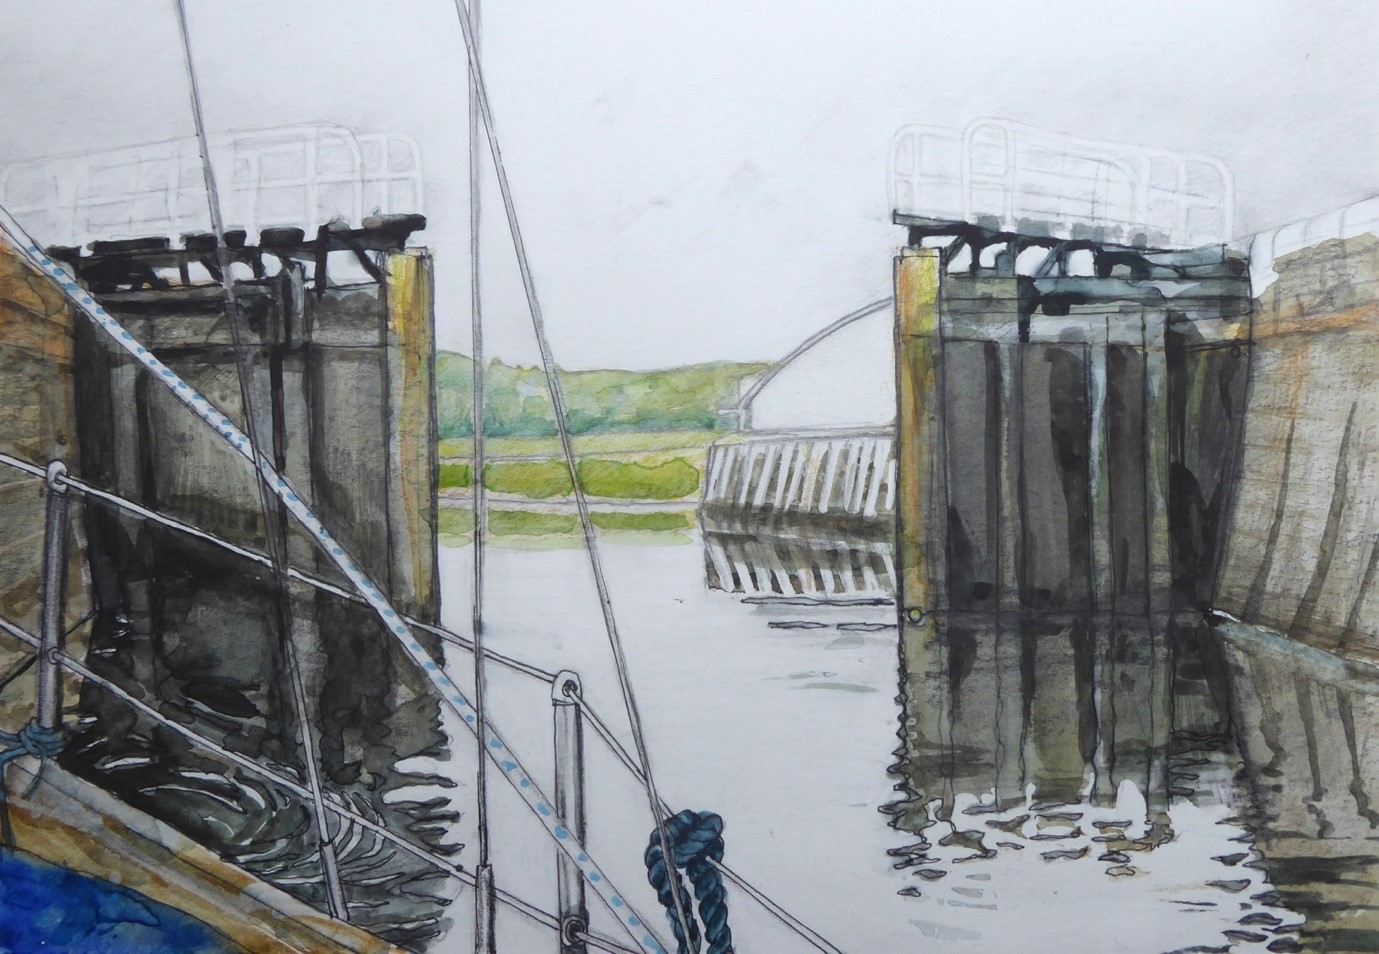 A painting of an open canal lock from the perspective of a passenger on a yacht. The edge of the yacht and part of its sails can be seen in the foreground